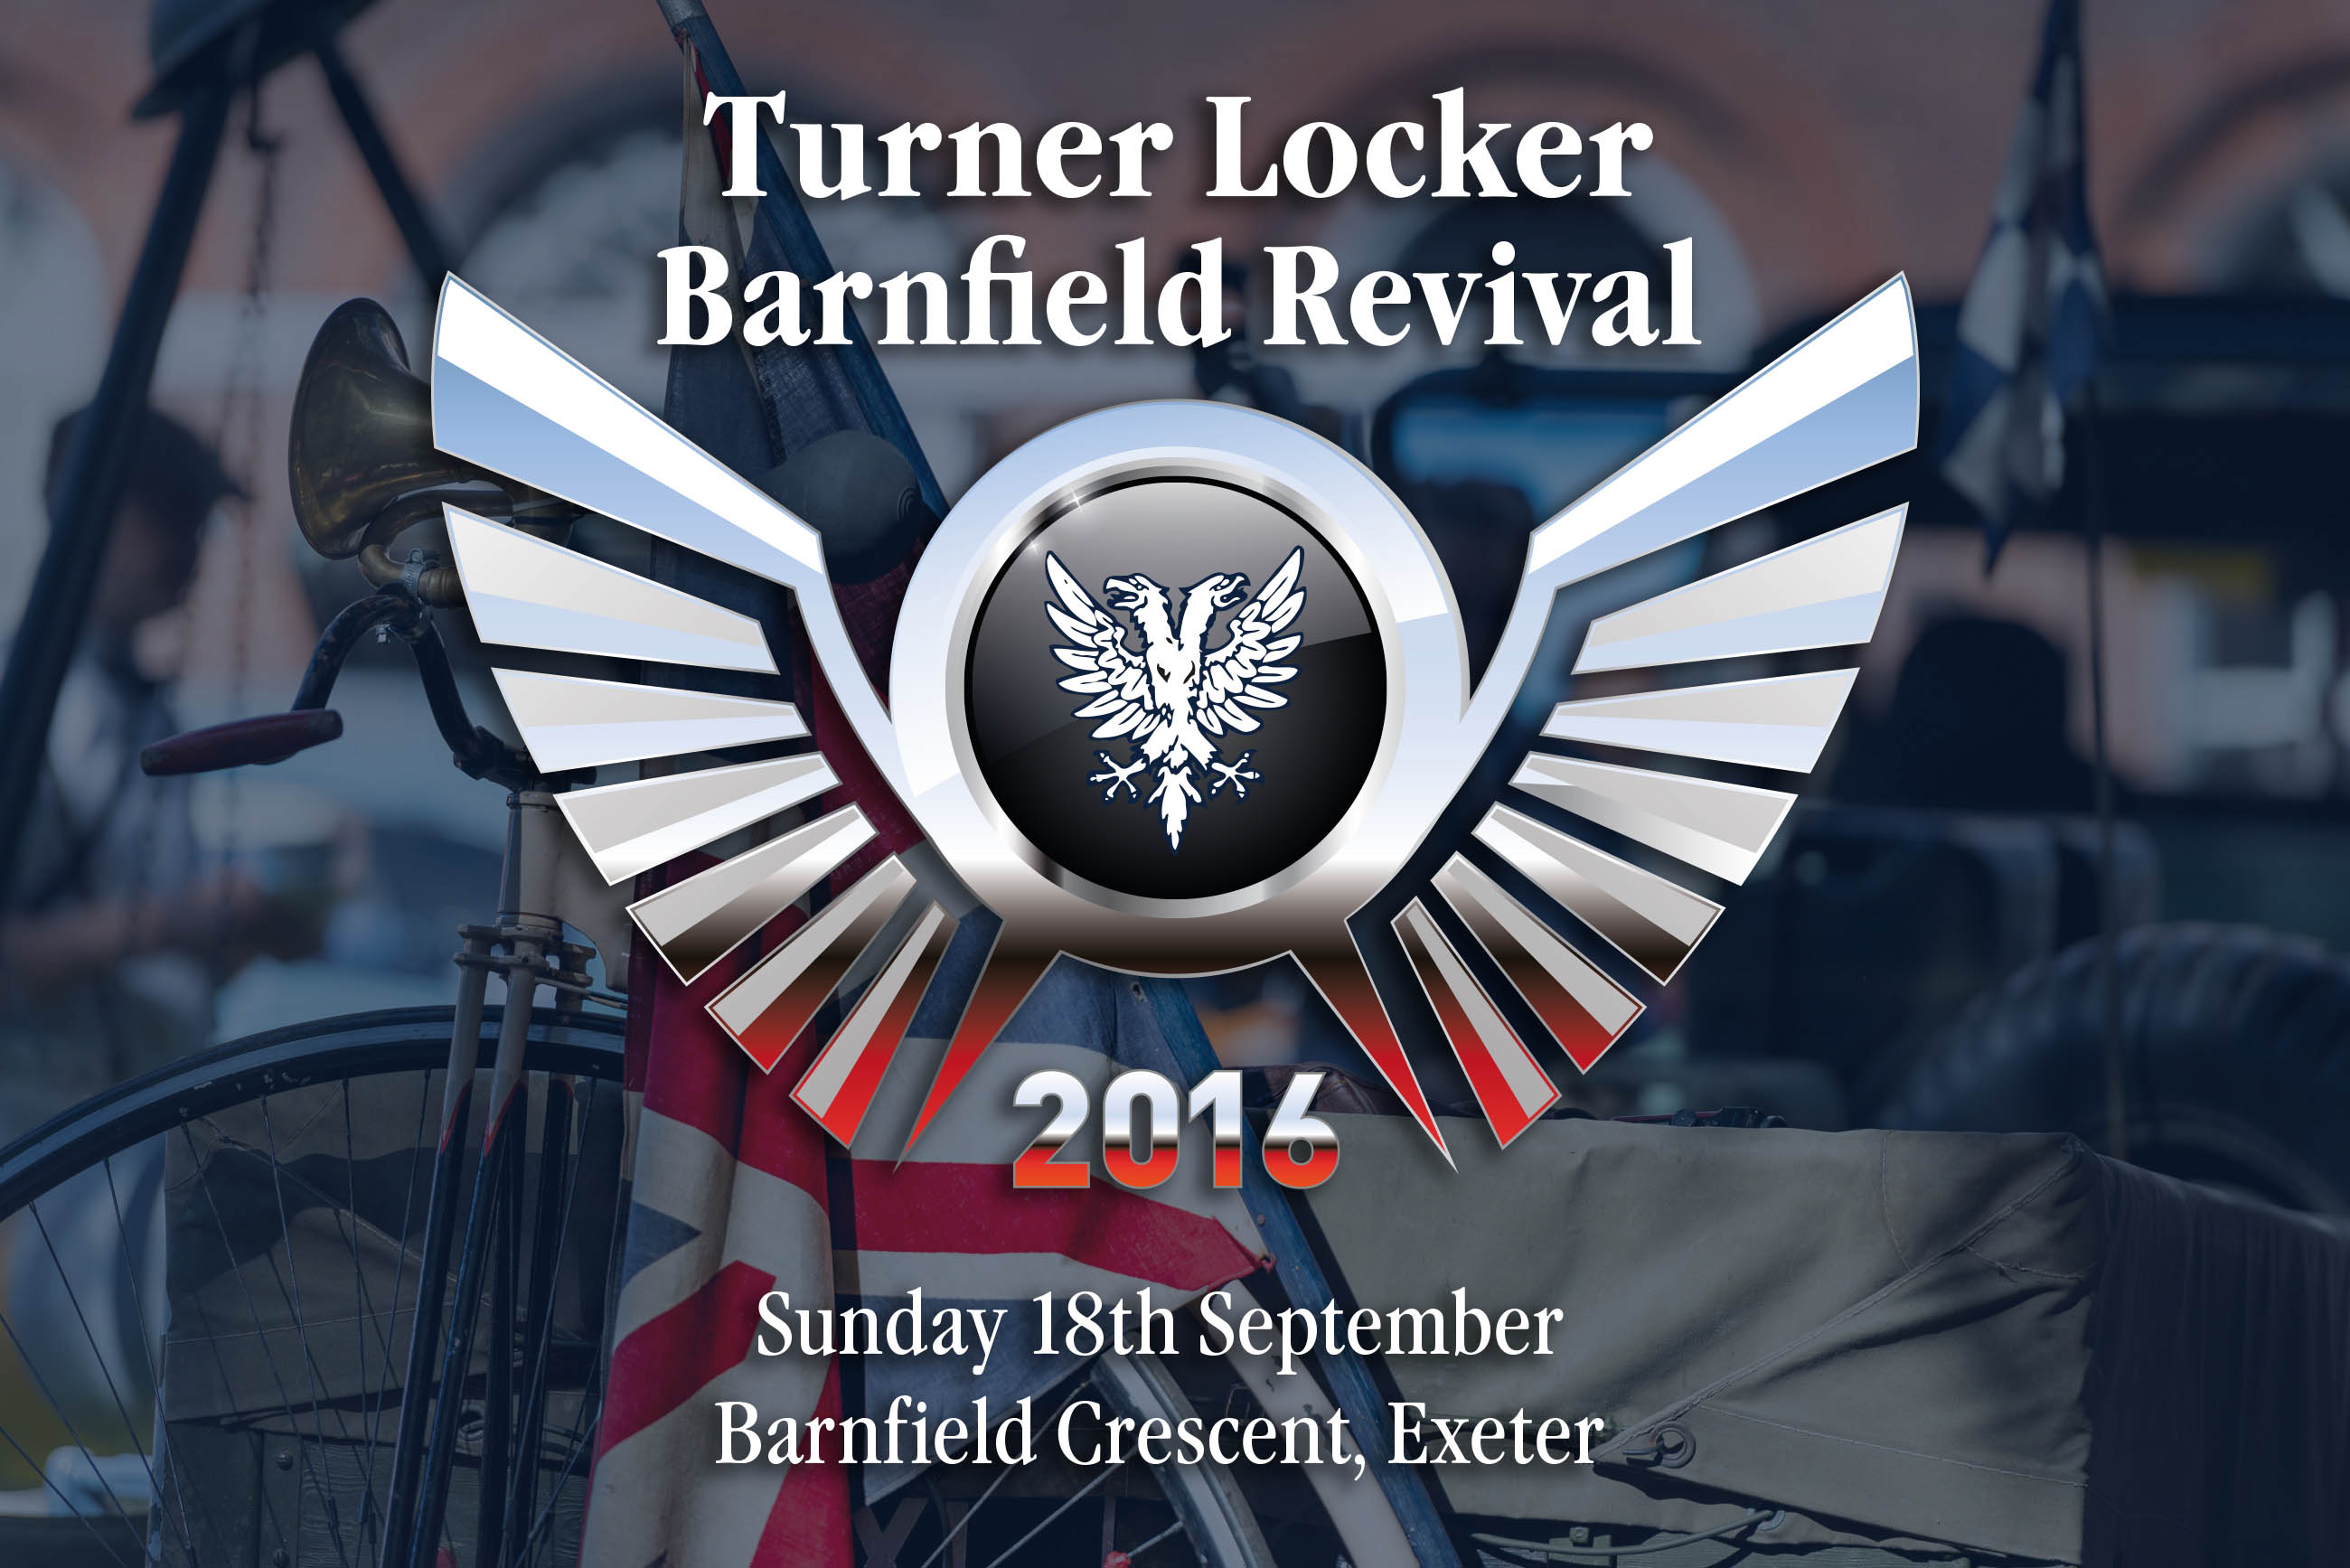 Turner Locker Barnfield Revival 2016